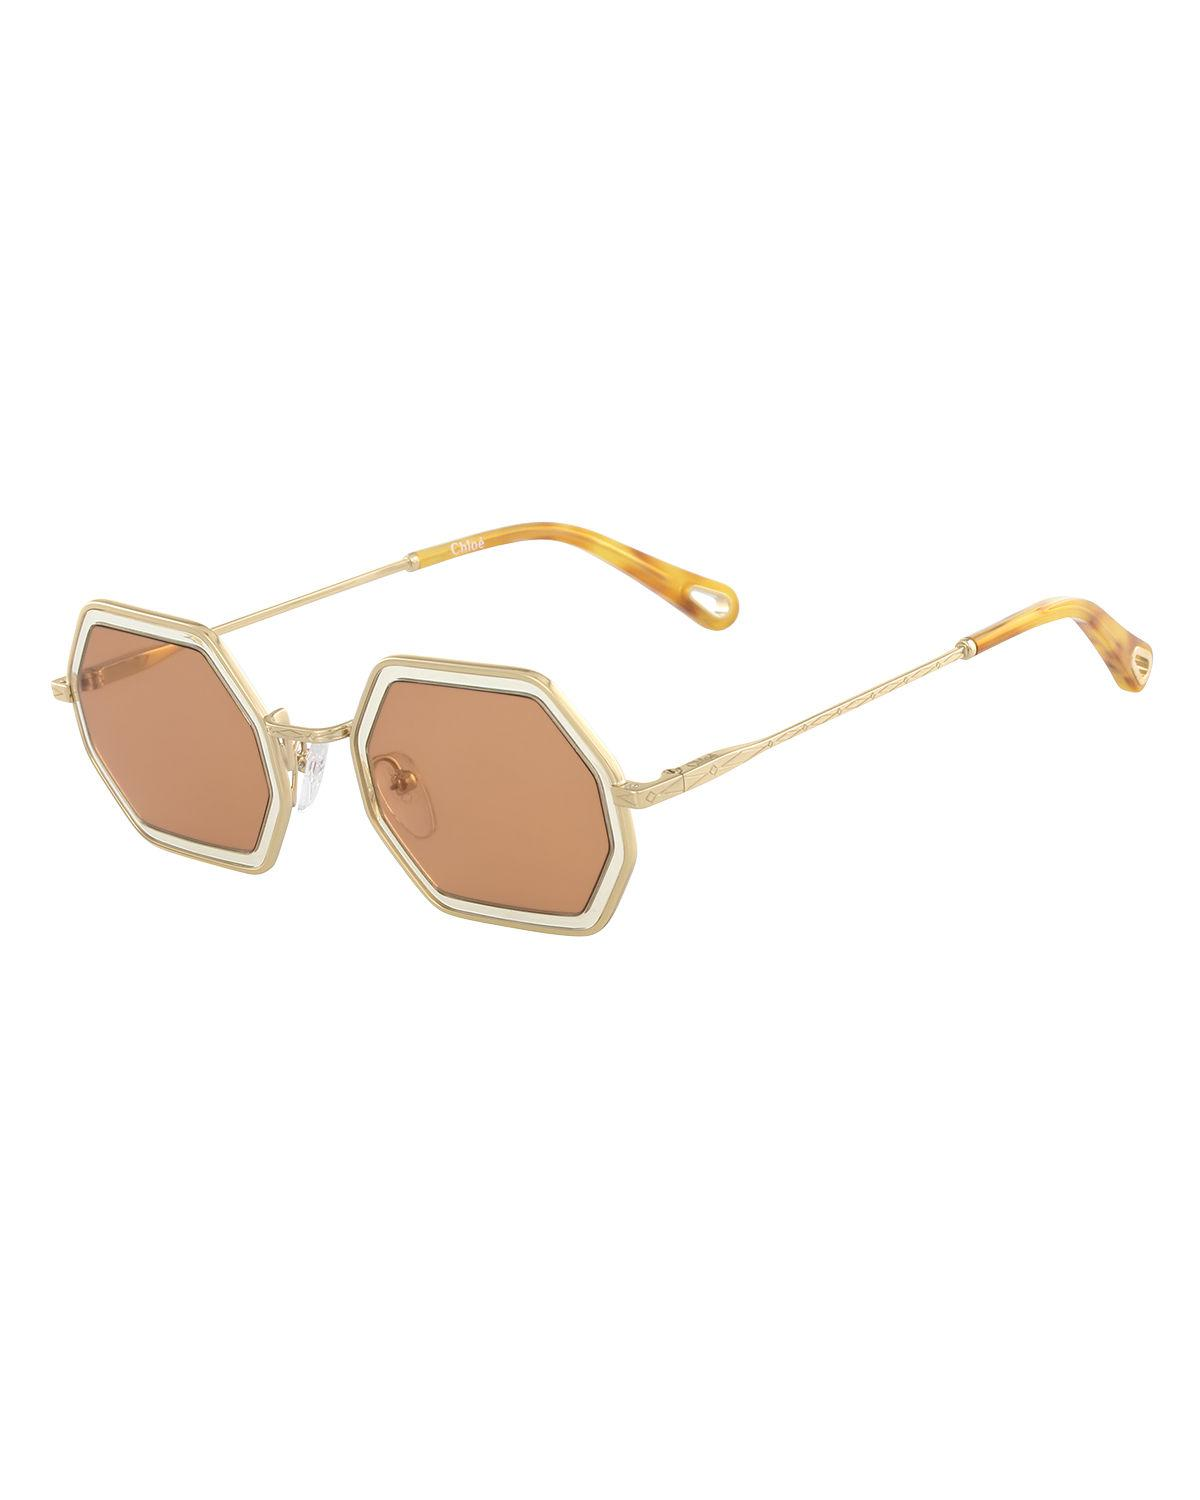 966c3c2961f ChloÉ Tally Hexagonal Metal Sunglasses In Gold Sand Orange